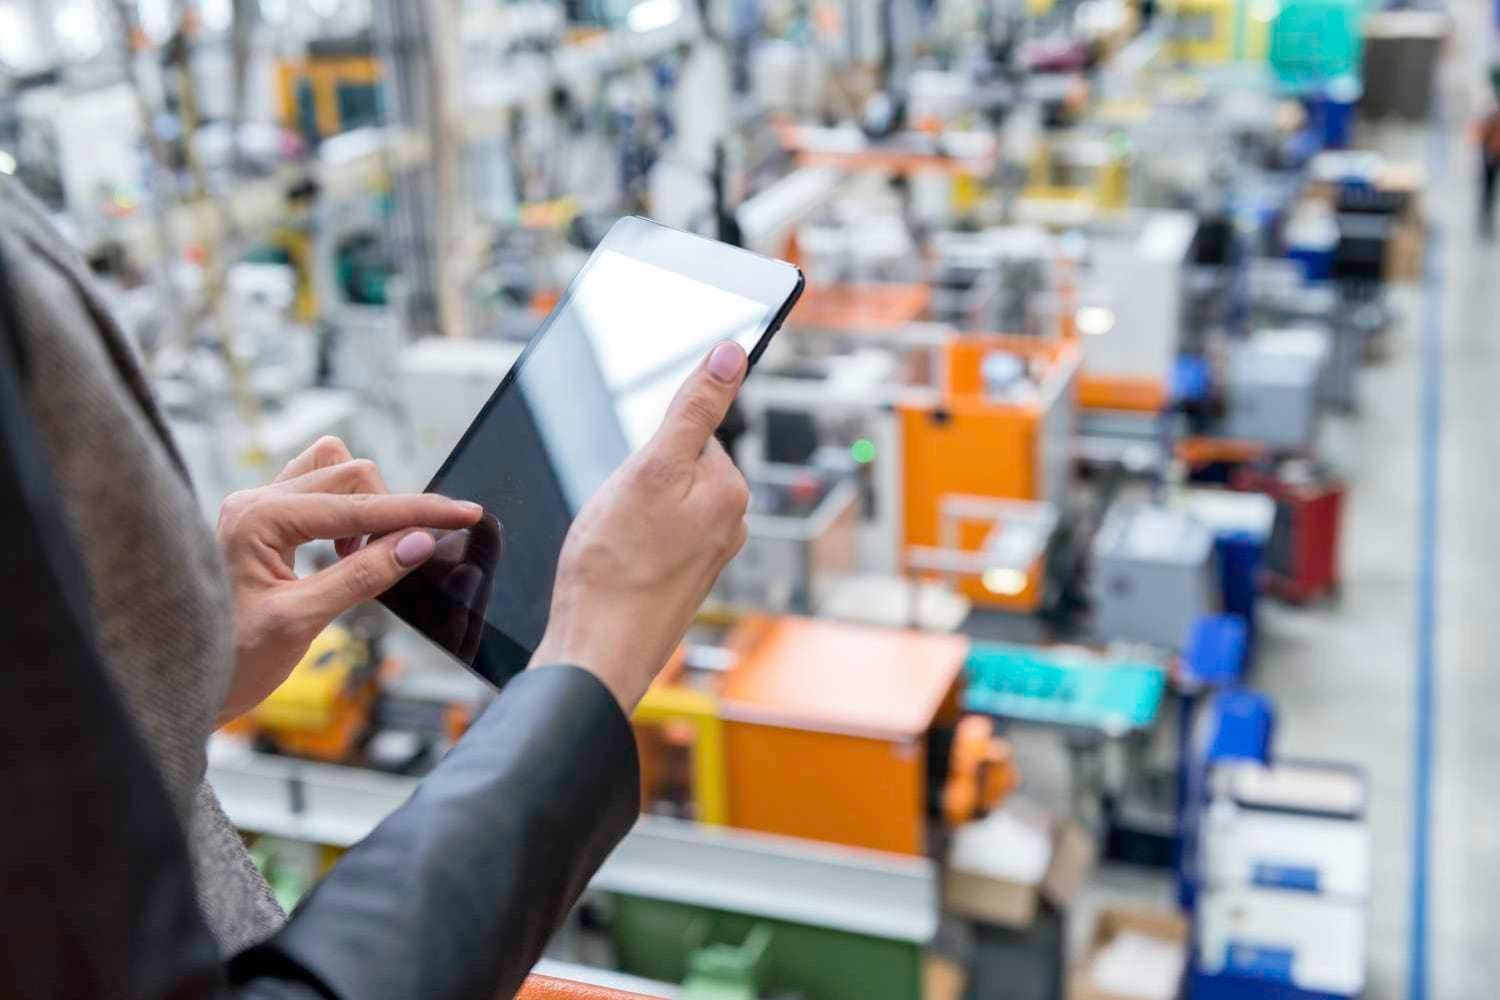 Factory manager uses digital tablet to monitor factory floor